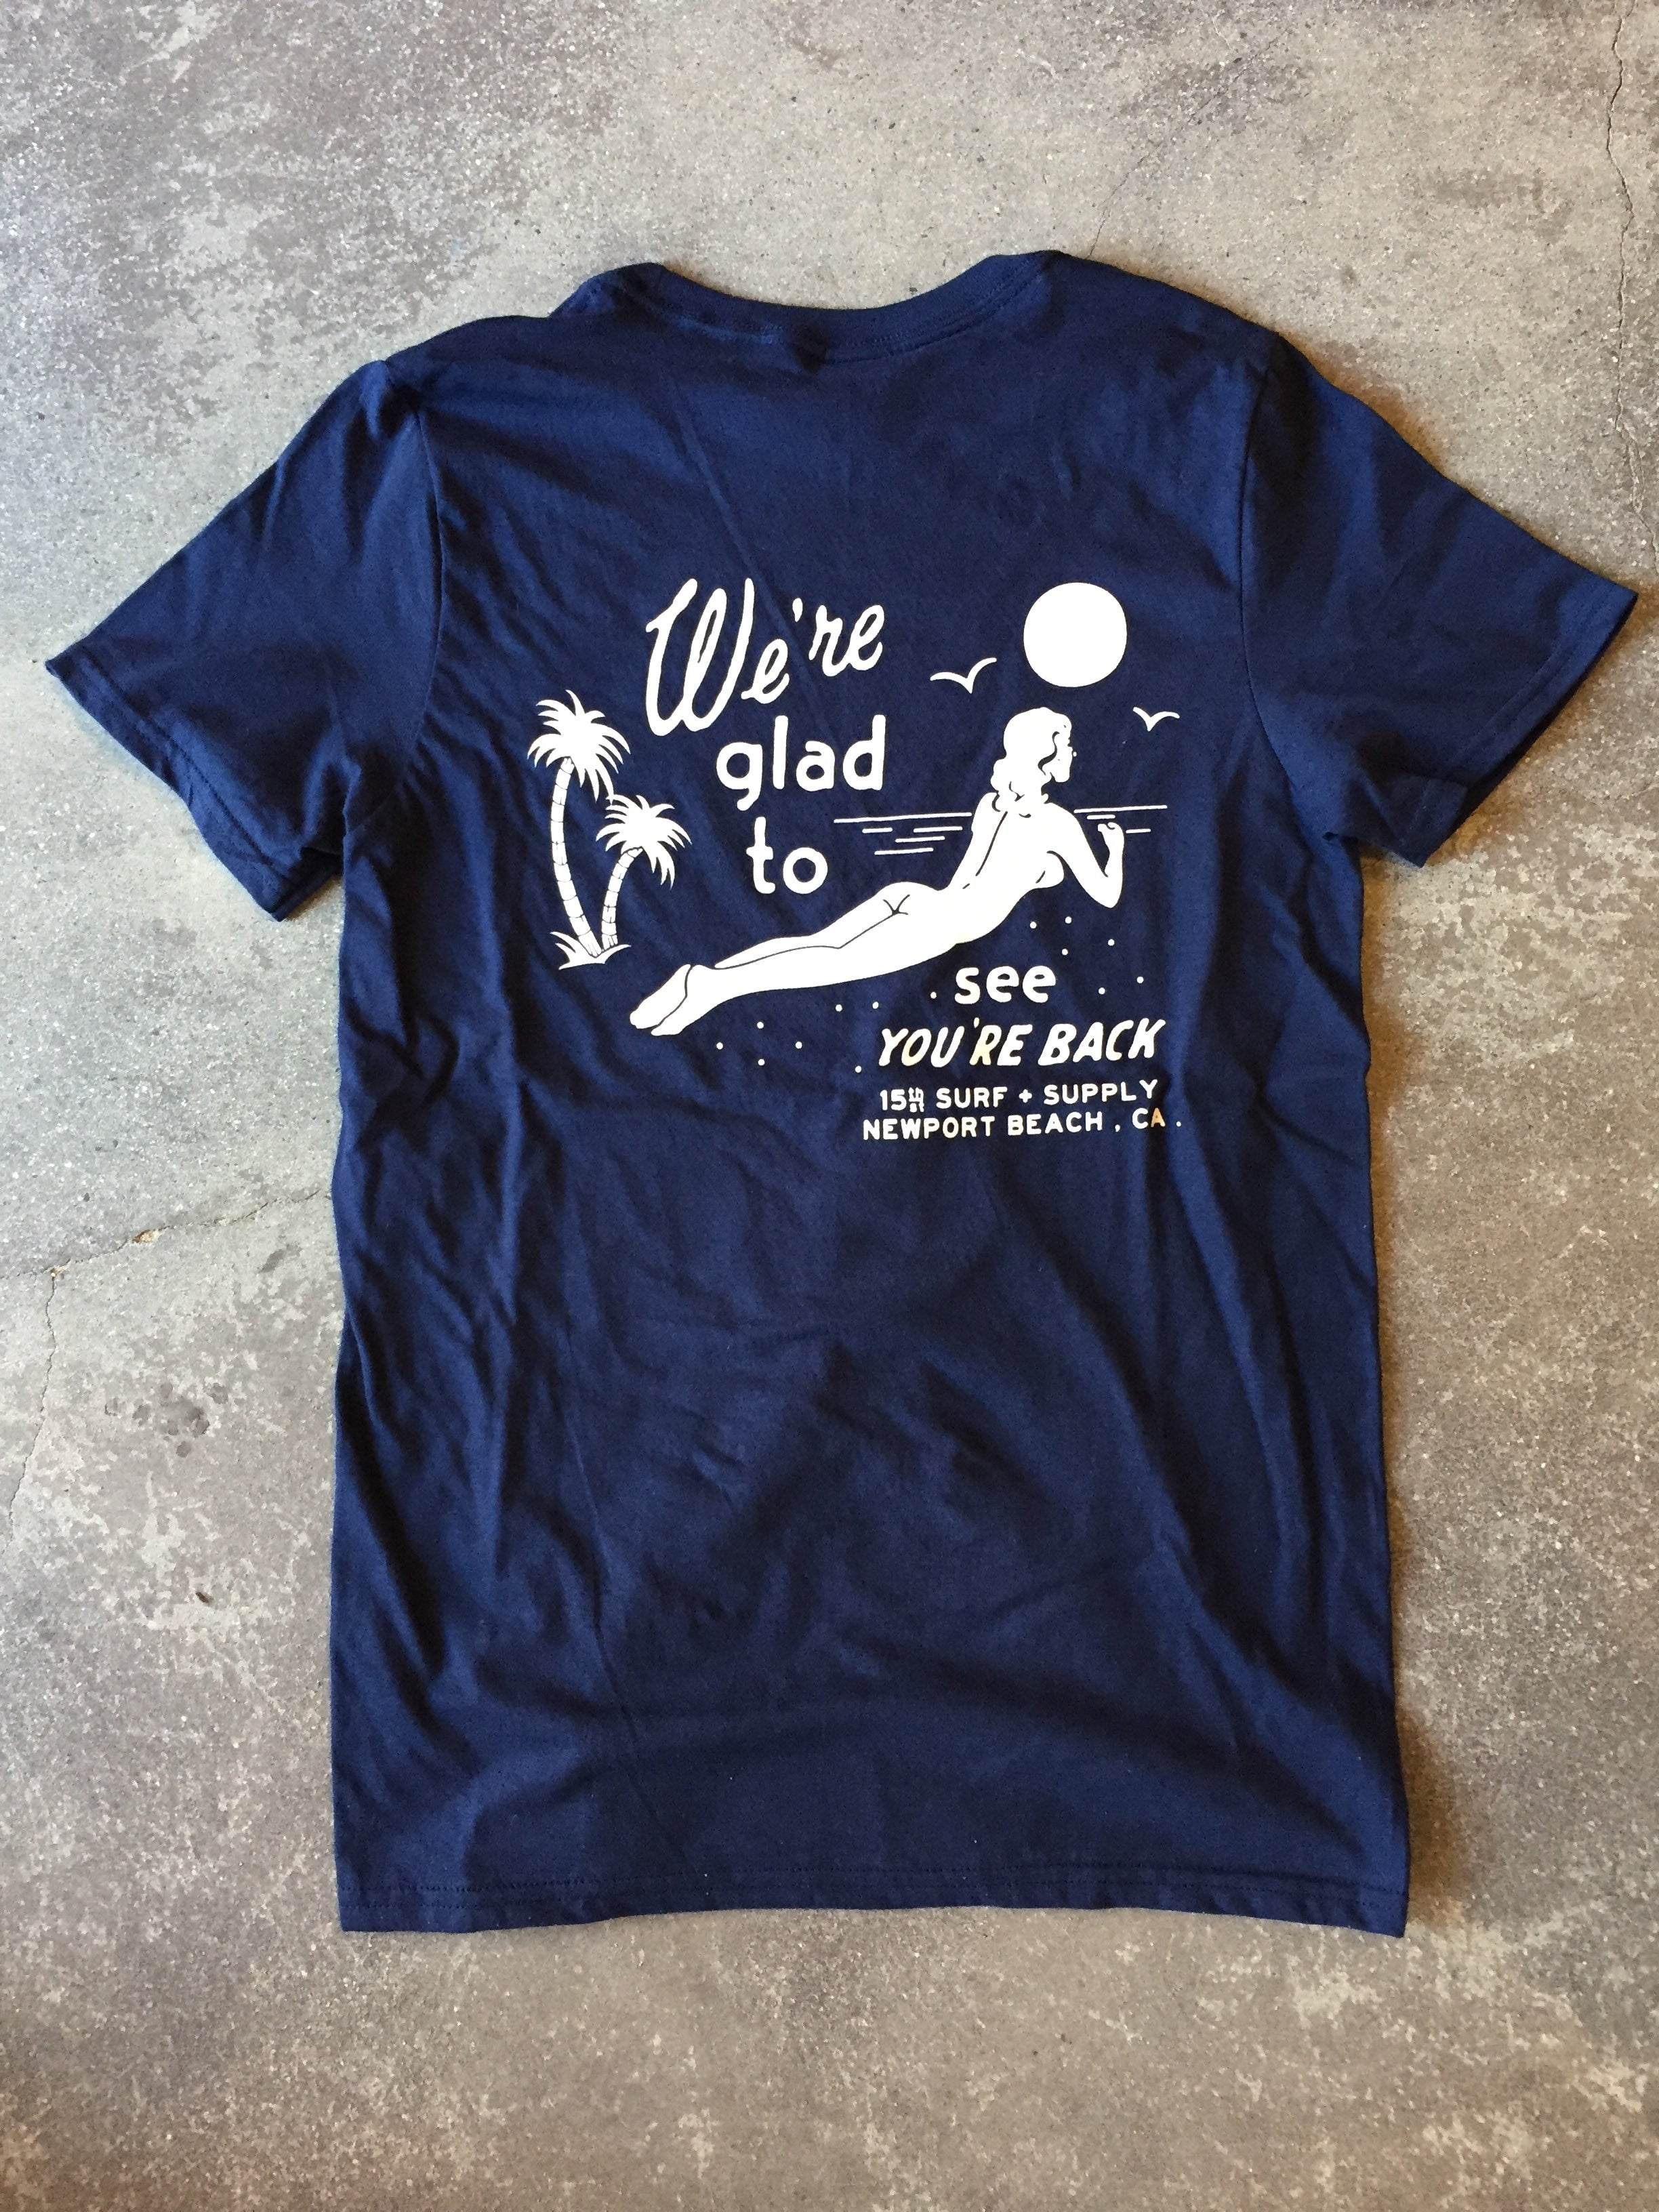 15th St Men's We're Glad To See You're Back Short Sleeve T-Shirt NAVY